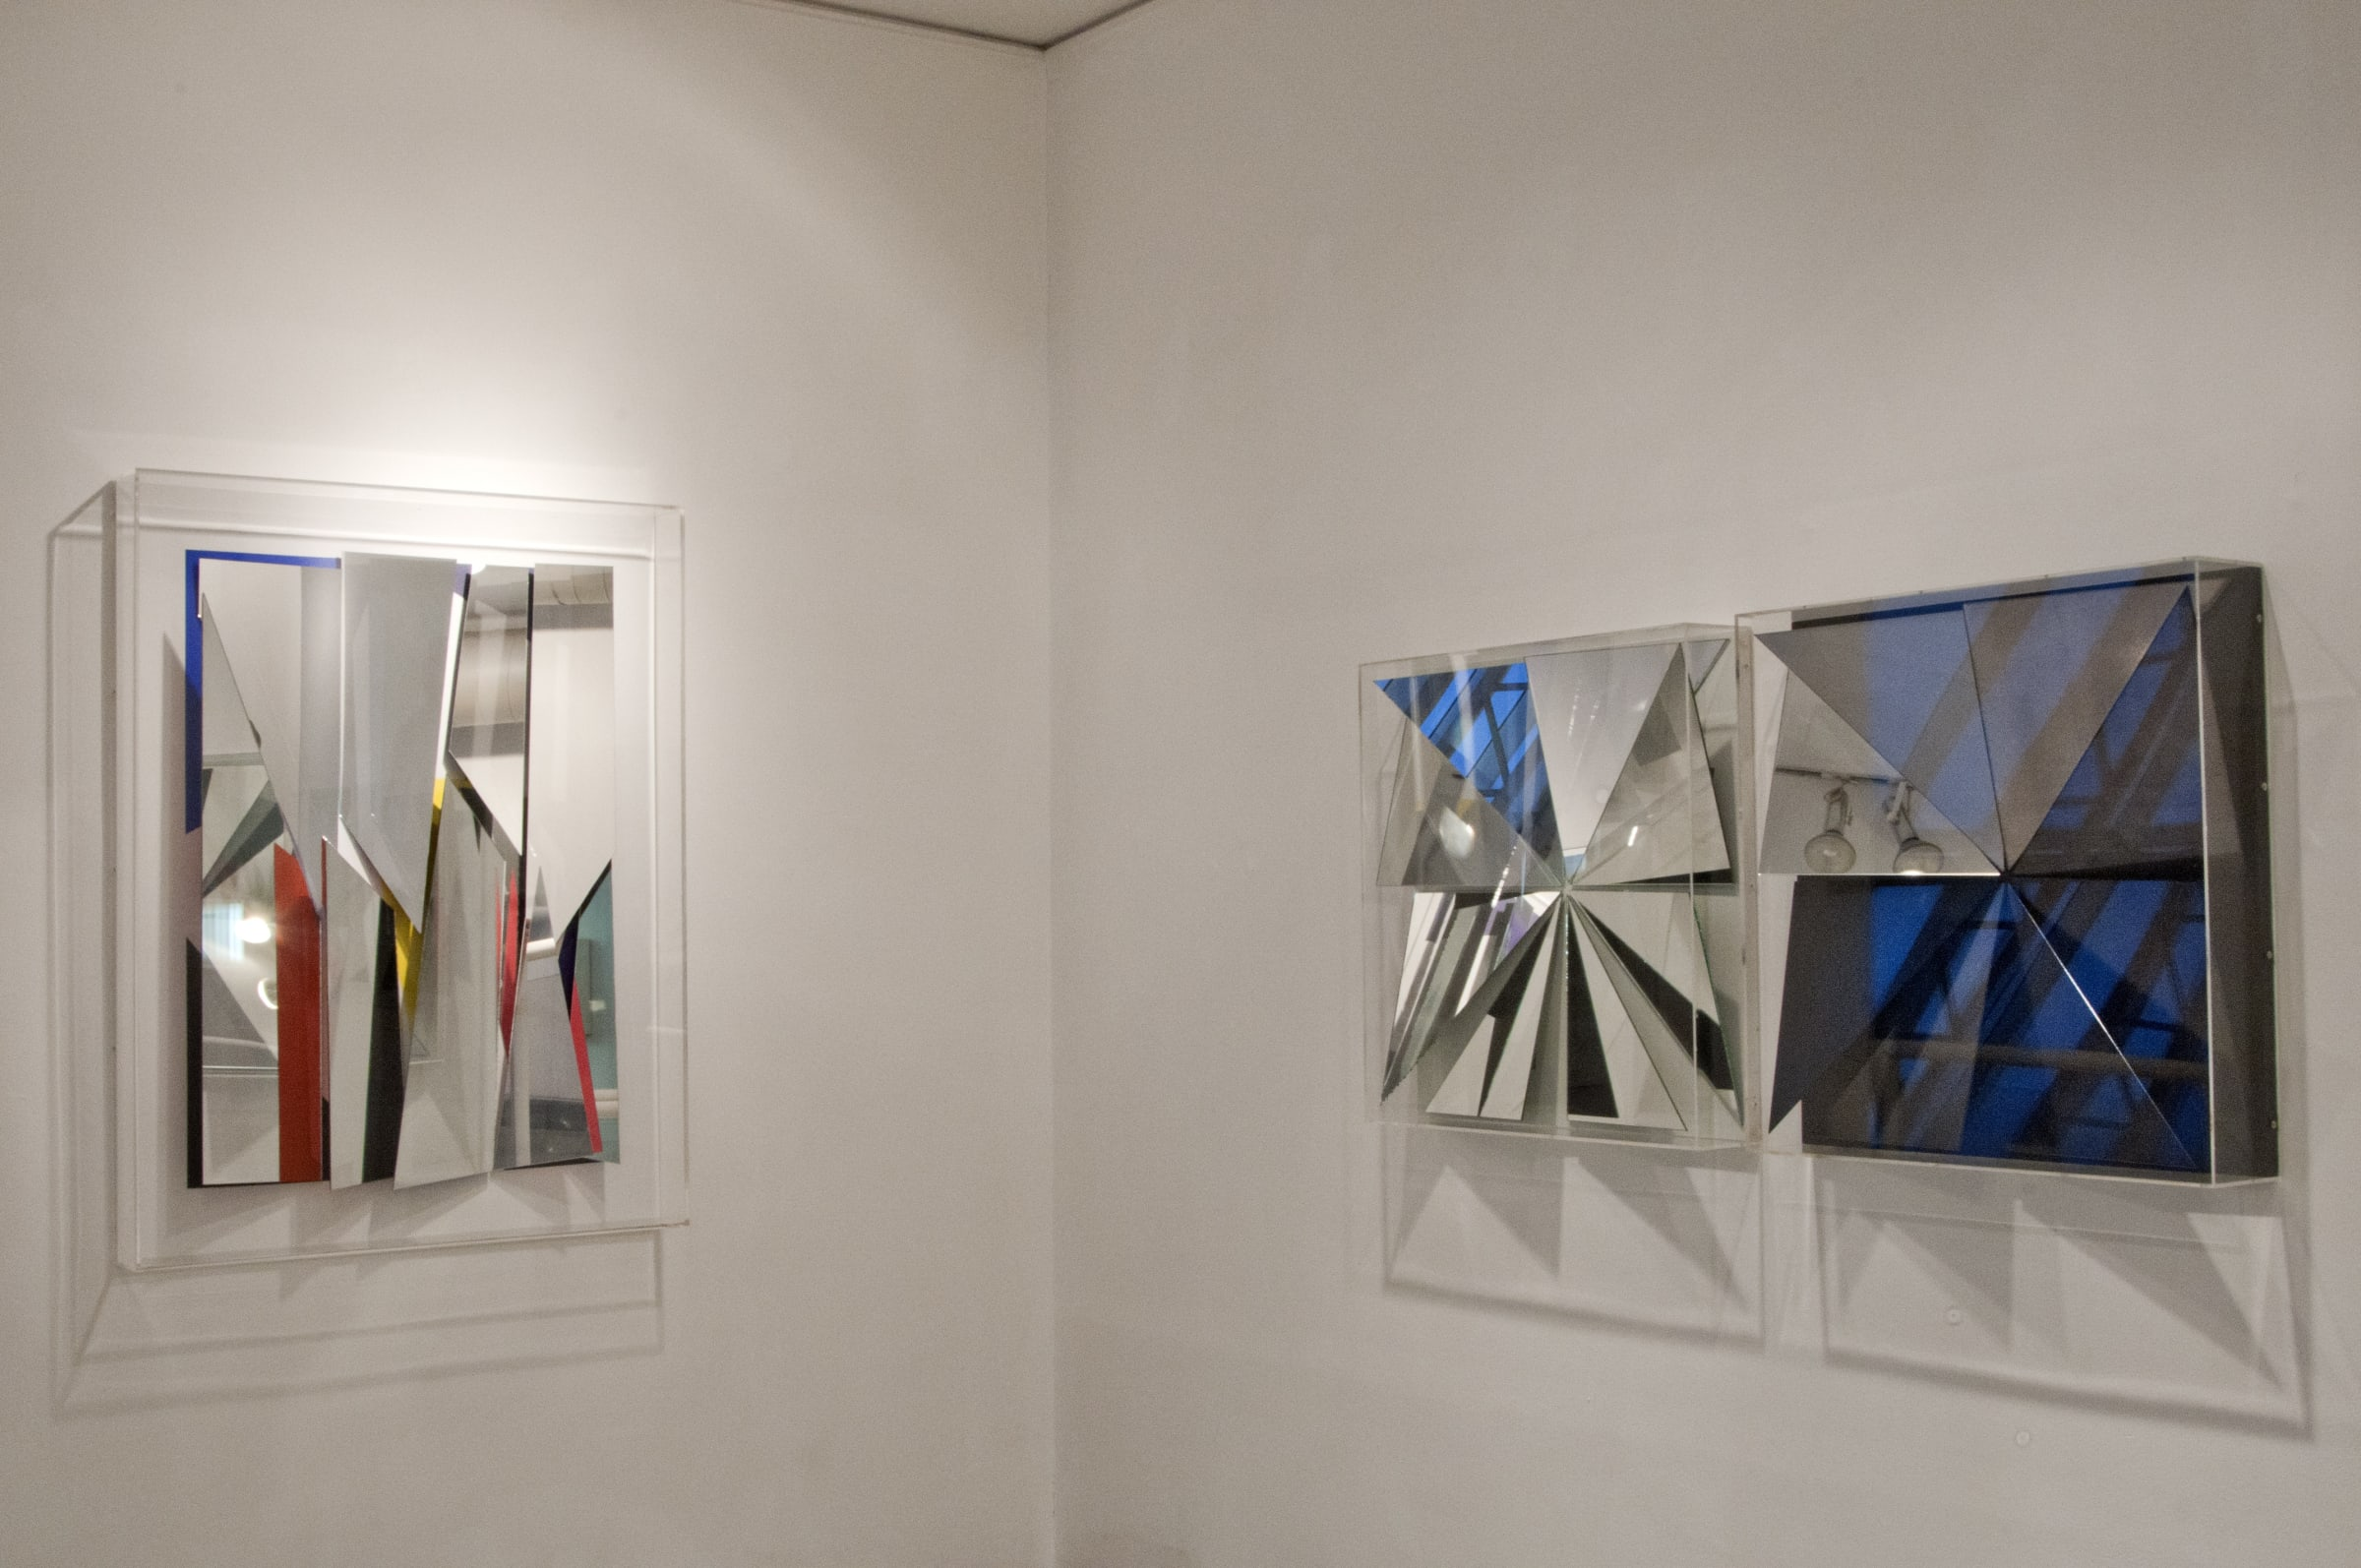 """<span class=""""link fancybox-details-link""""><a href=""""/exhibitions/75/works/image_standalone230/"""">View Detail Page</a></span><p>CHRISTIAN MEGERT   A NEW SPACE   11 JAN - 24 FEB 2012  Installation View</p>"""